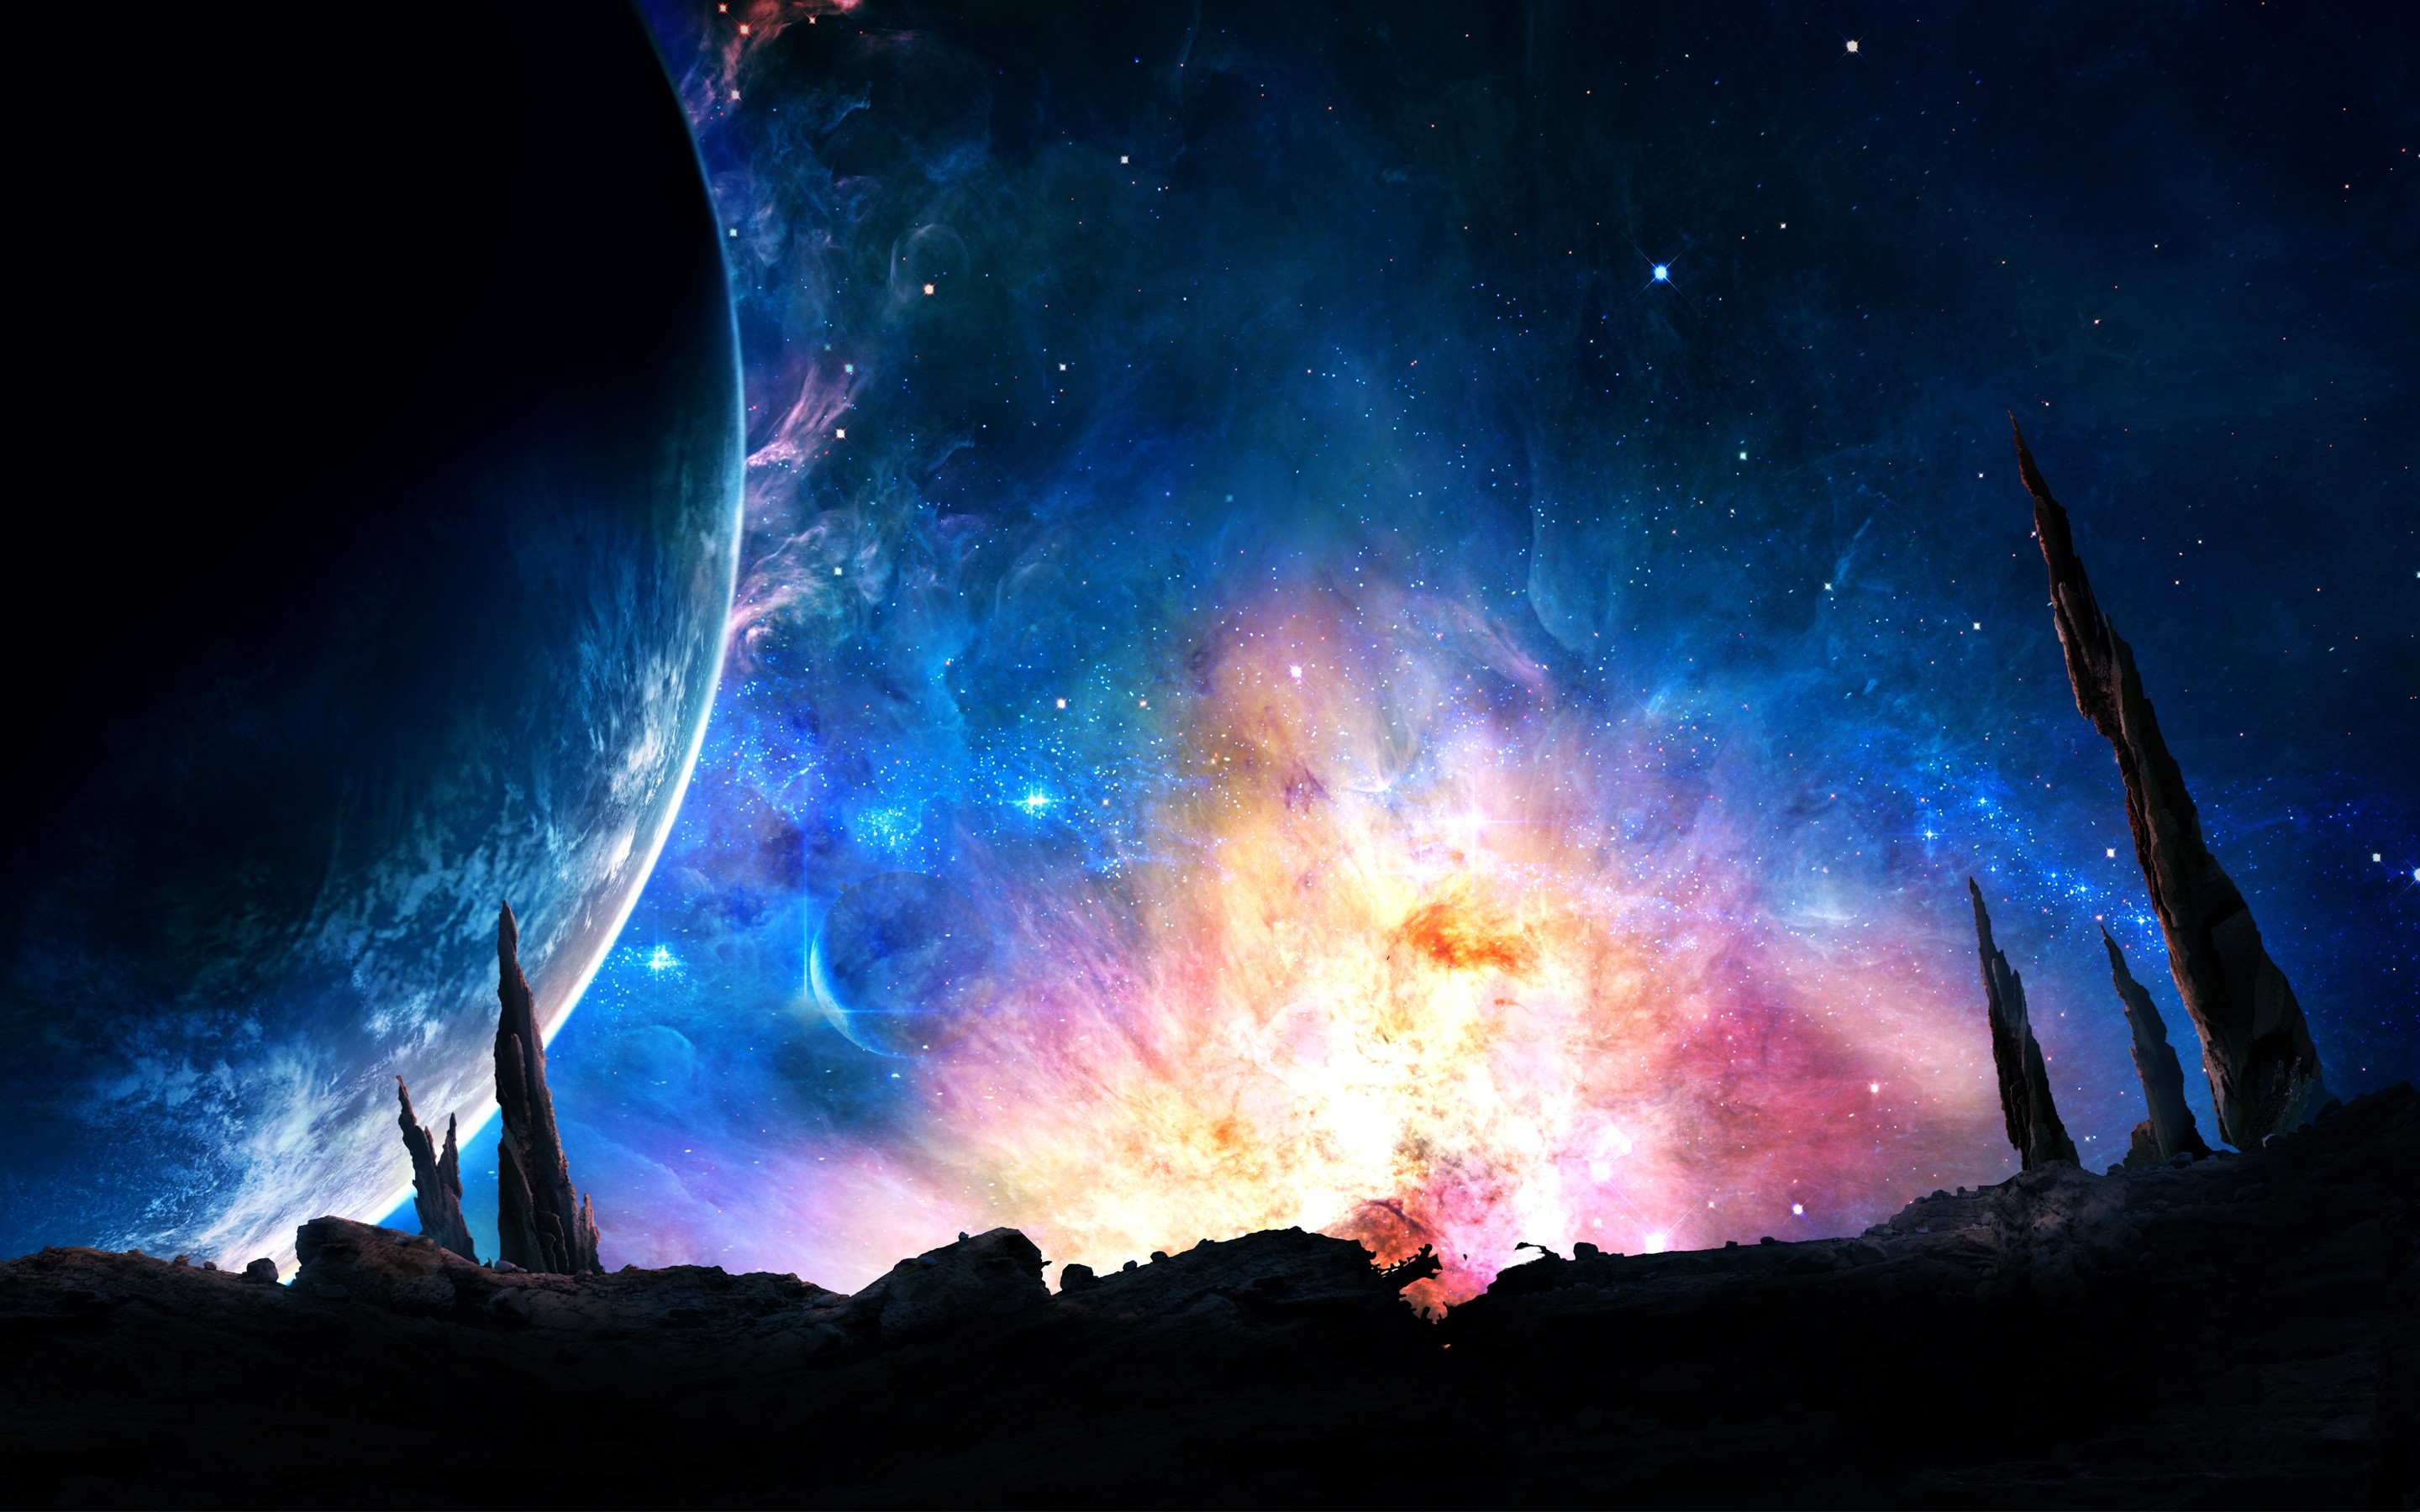 1366x768 galaxy digital universe 1366x768 resolution hd 4k